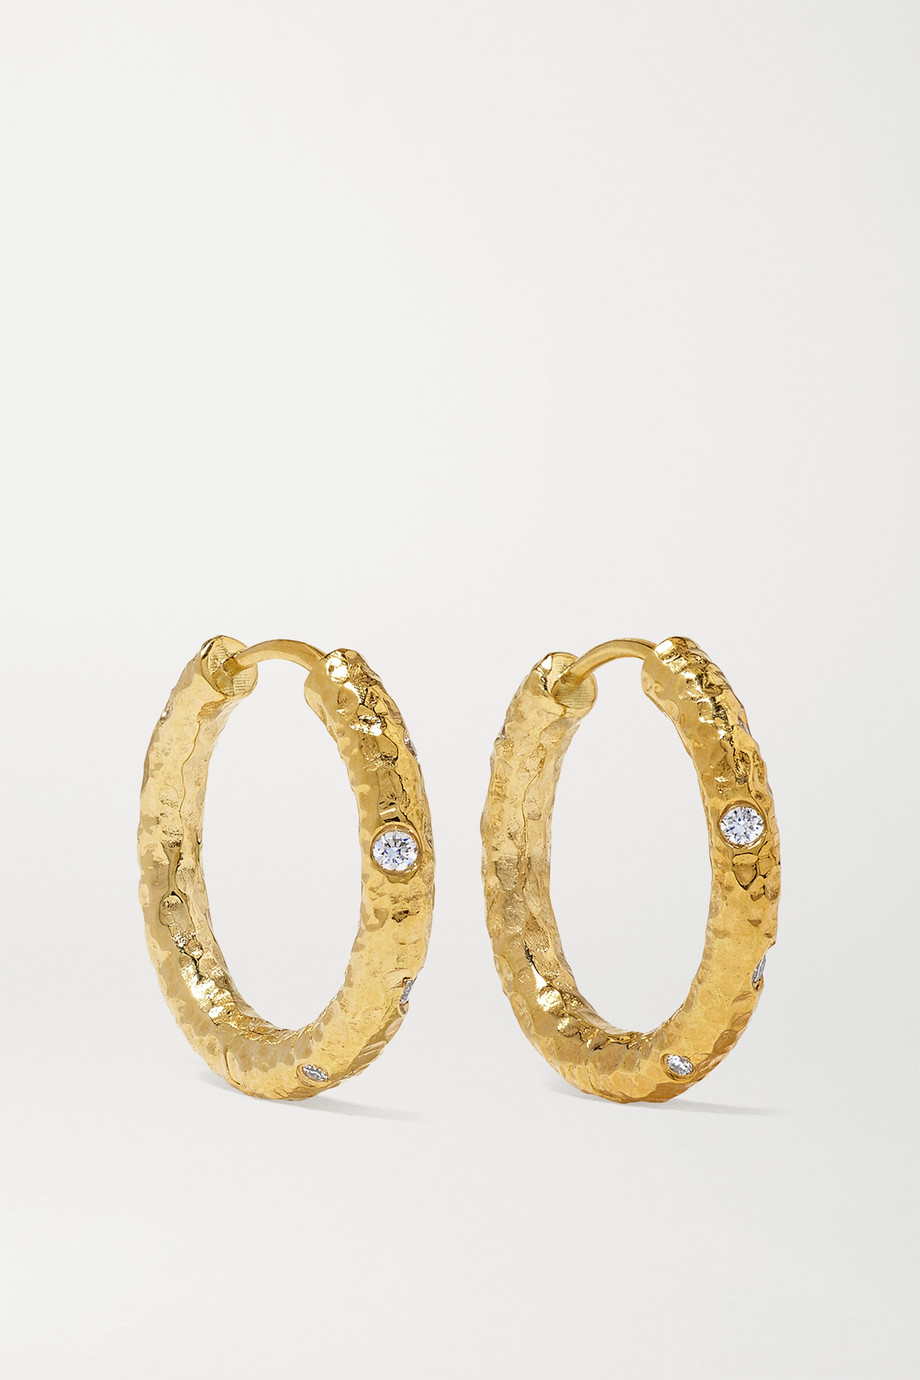 OCTAVIA ELIZABETH + NET SUSTAIN Nesting Gem Gabby 18-karat recycled gold diamond hoop earrings